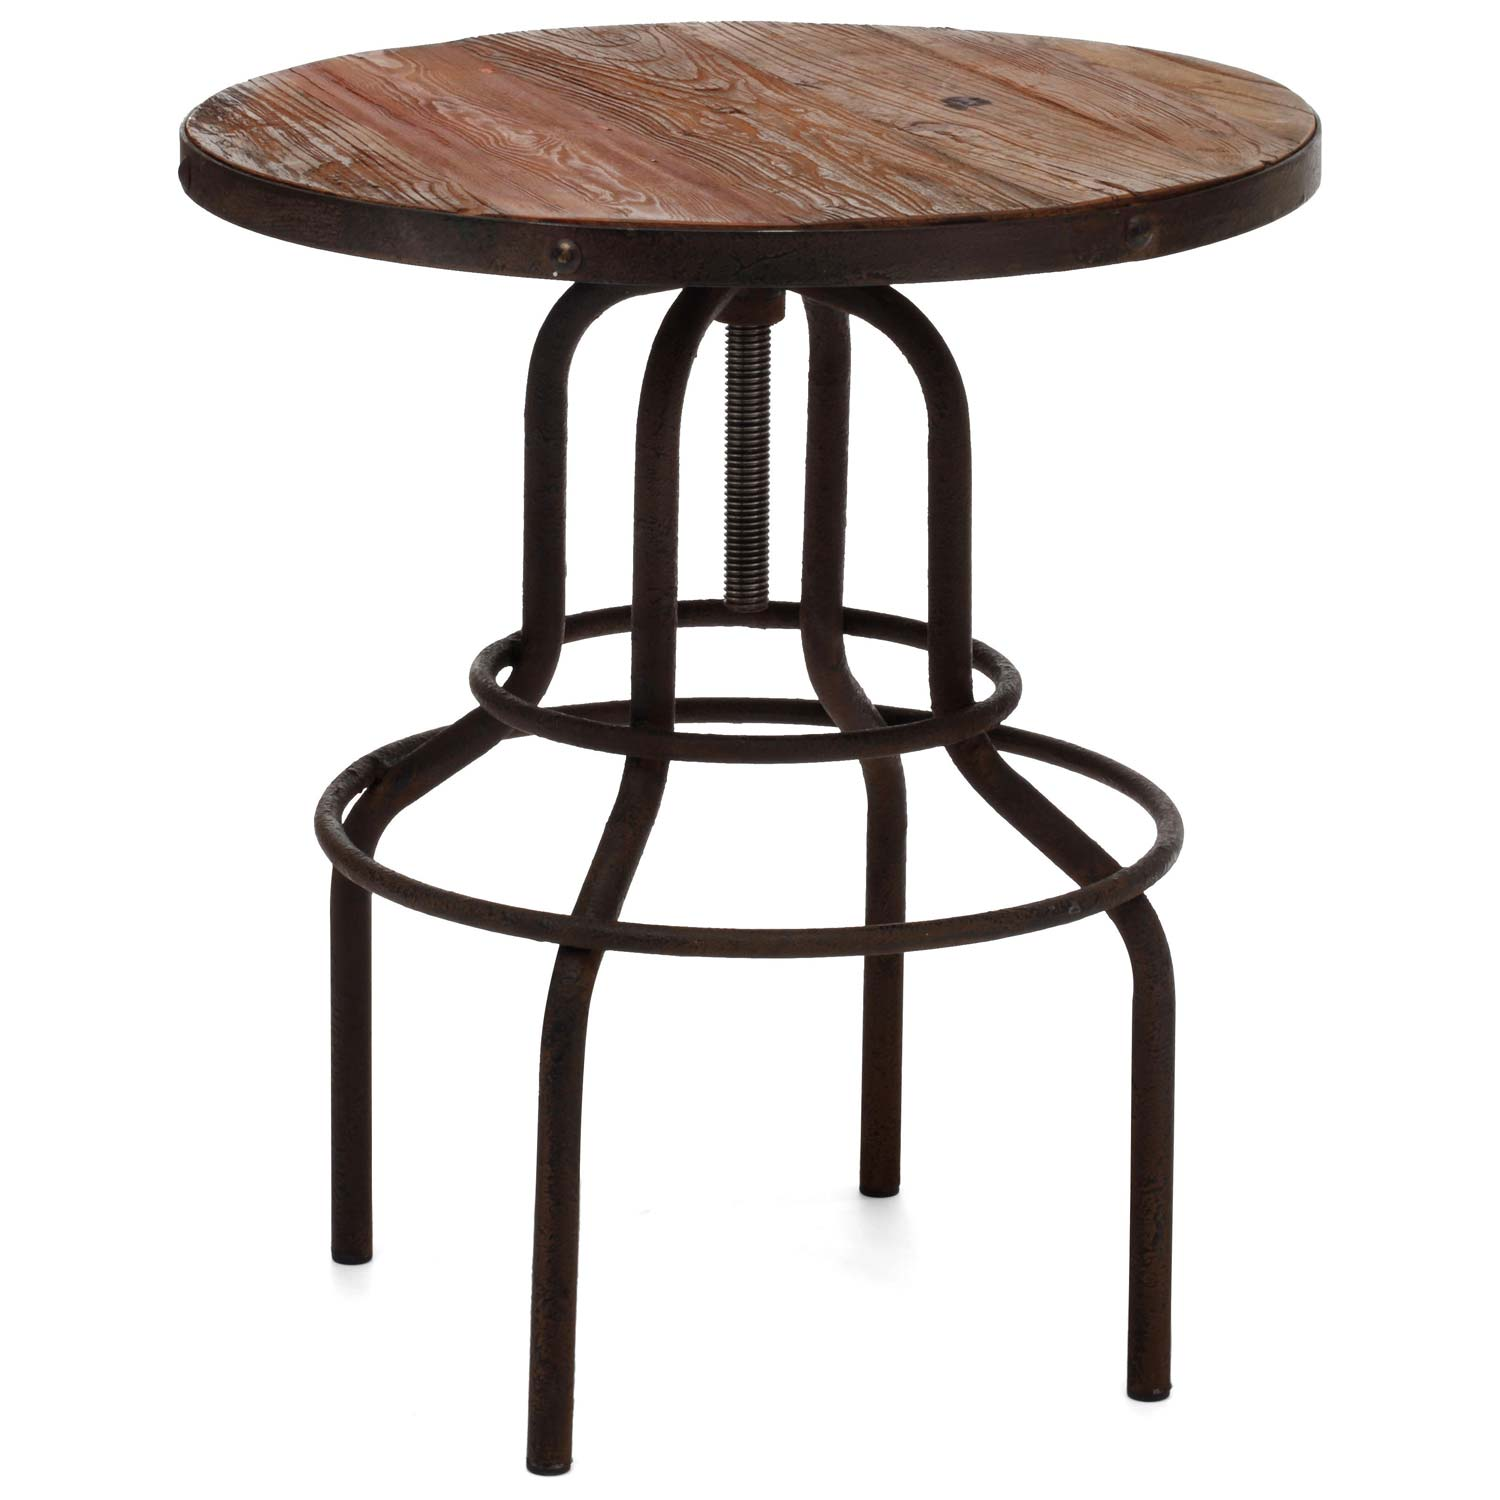 twin peaks round bistro table antique metal distressed. Black Bedroom Furniture Sets. Home Design Ideas